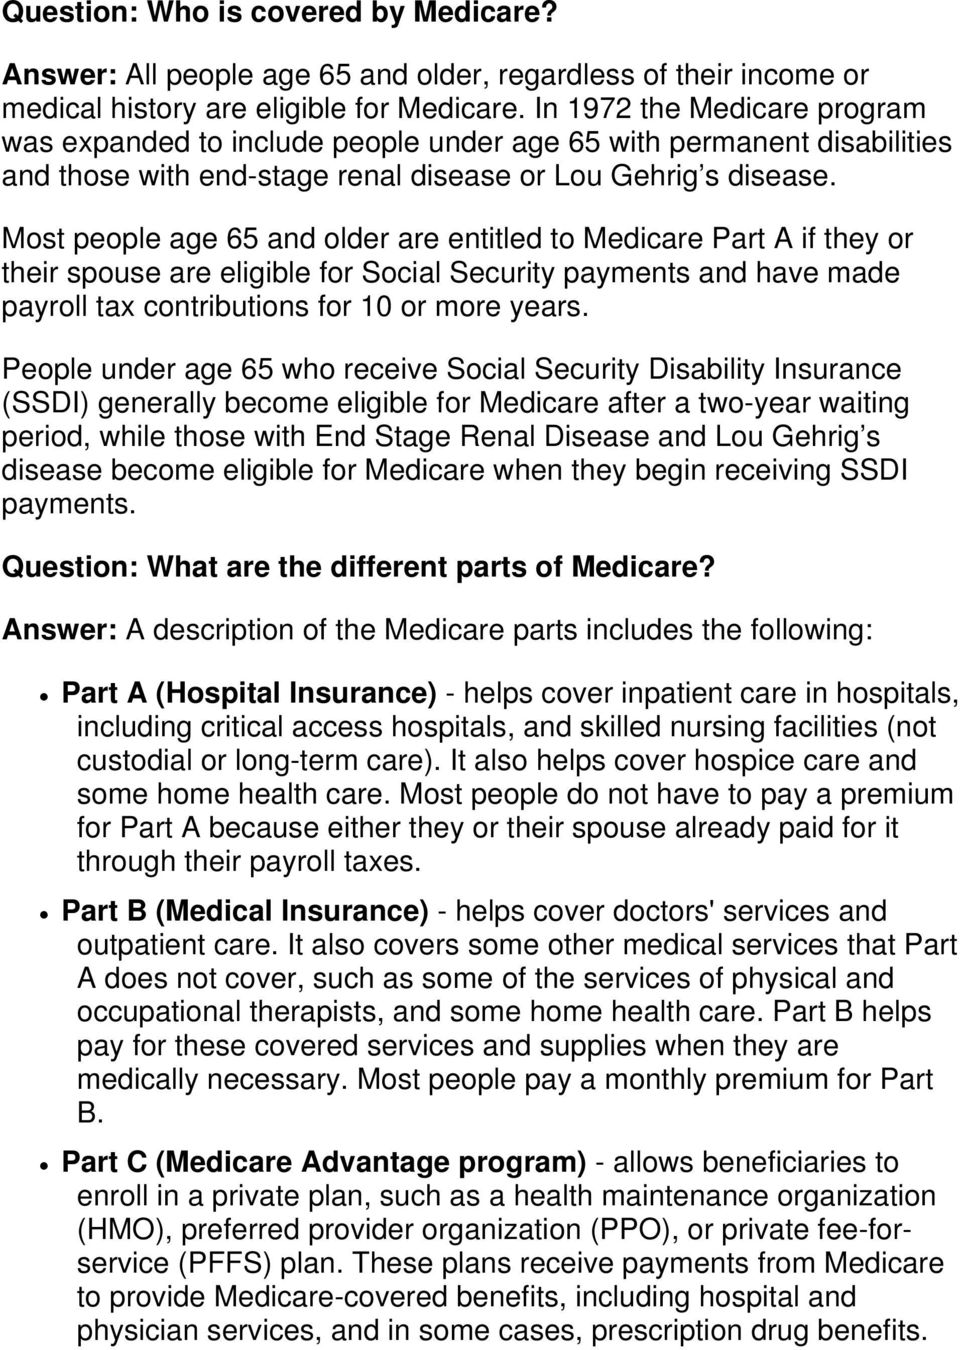 Most people age 65 and older are entitled to Medicare Part A if they or their spouse are eligible for Social Security payments and have made payroll tax contributions for 10 or more years.